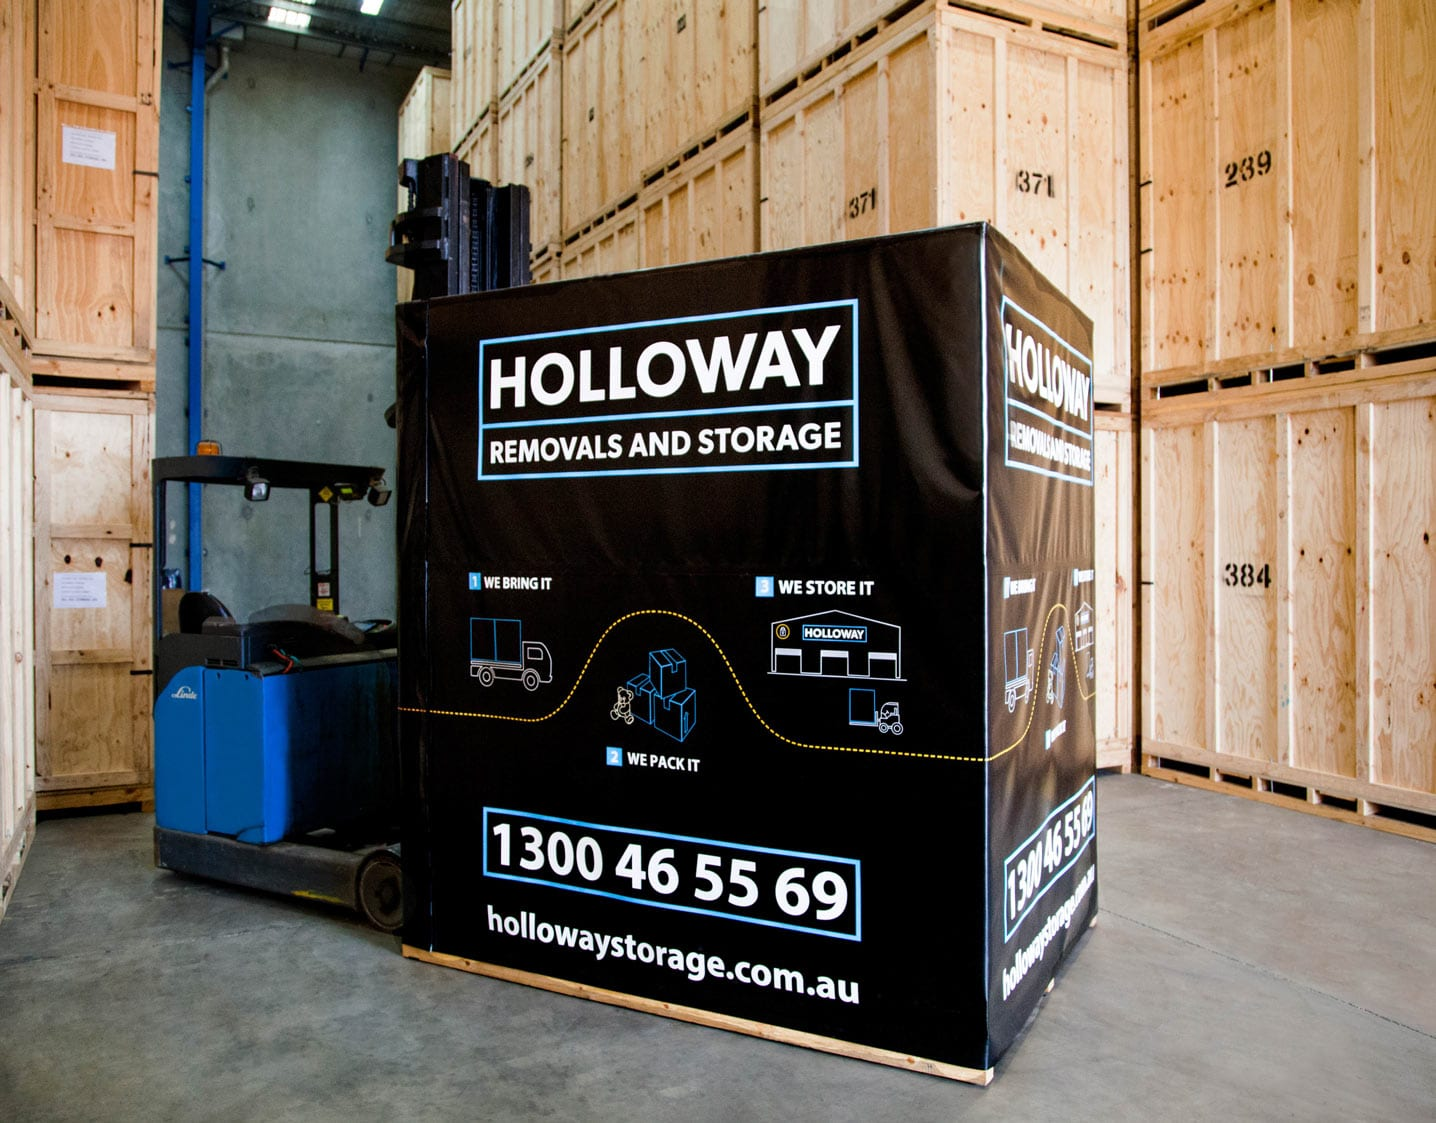 Furniture Storage Sydney About Our Units Sydney Mobile Storage Holloway Storage